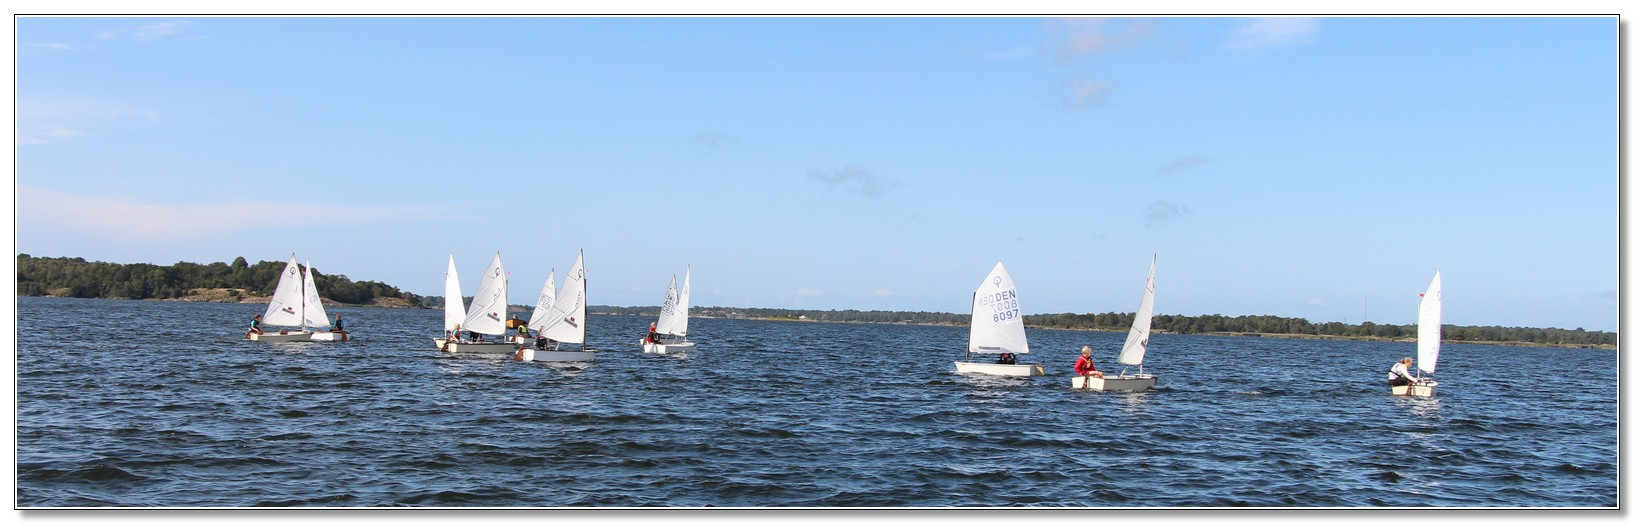 Sommarcup 2014-08-24